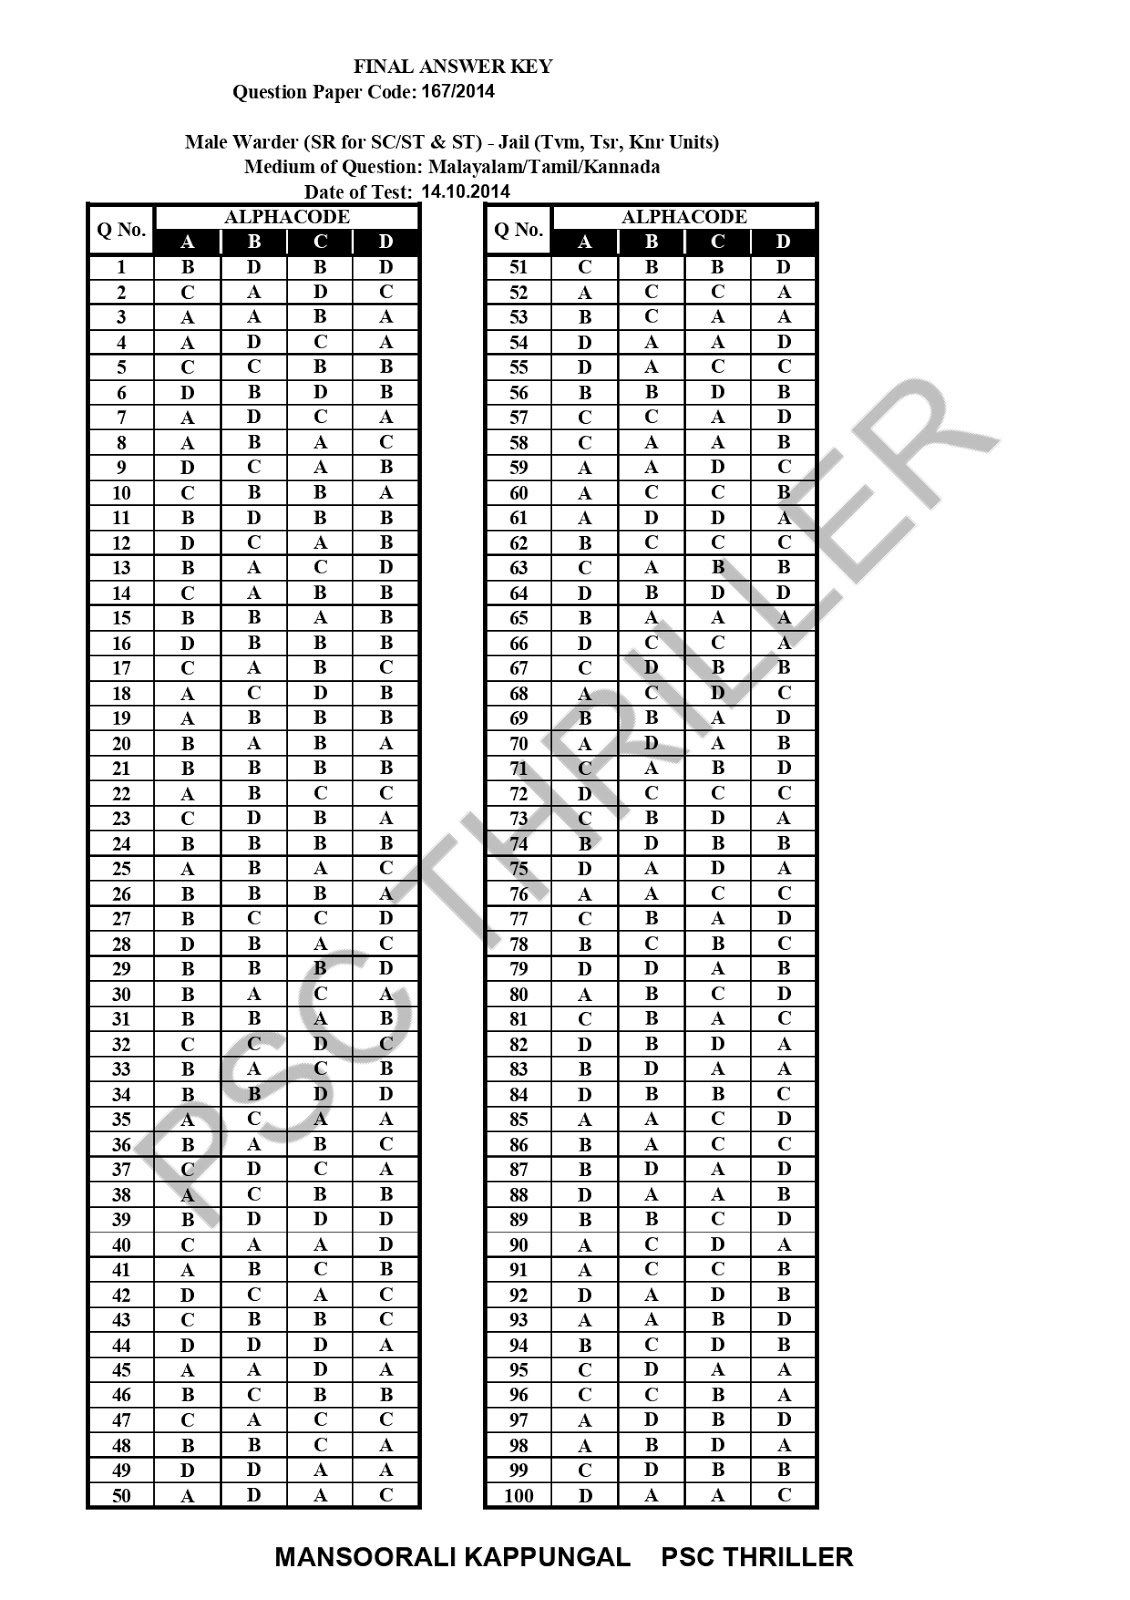 Jail Male Warder - Question Paper with Answer Key- 167/2014 - Kerala PSC